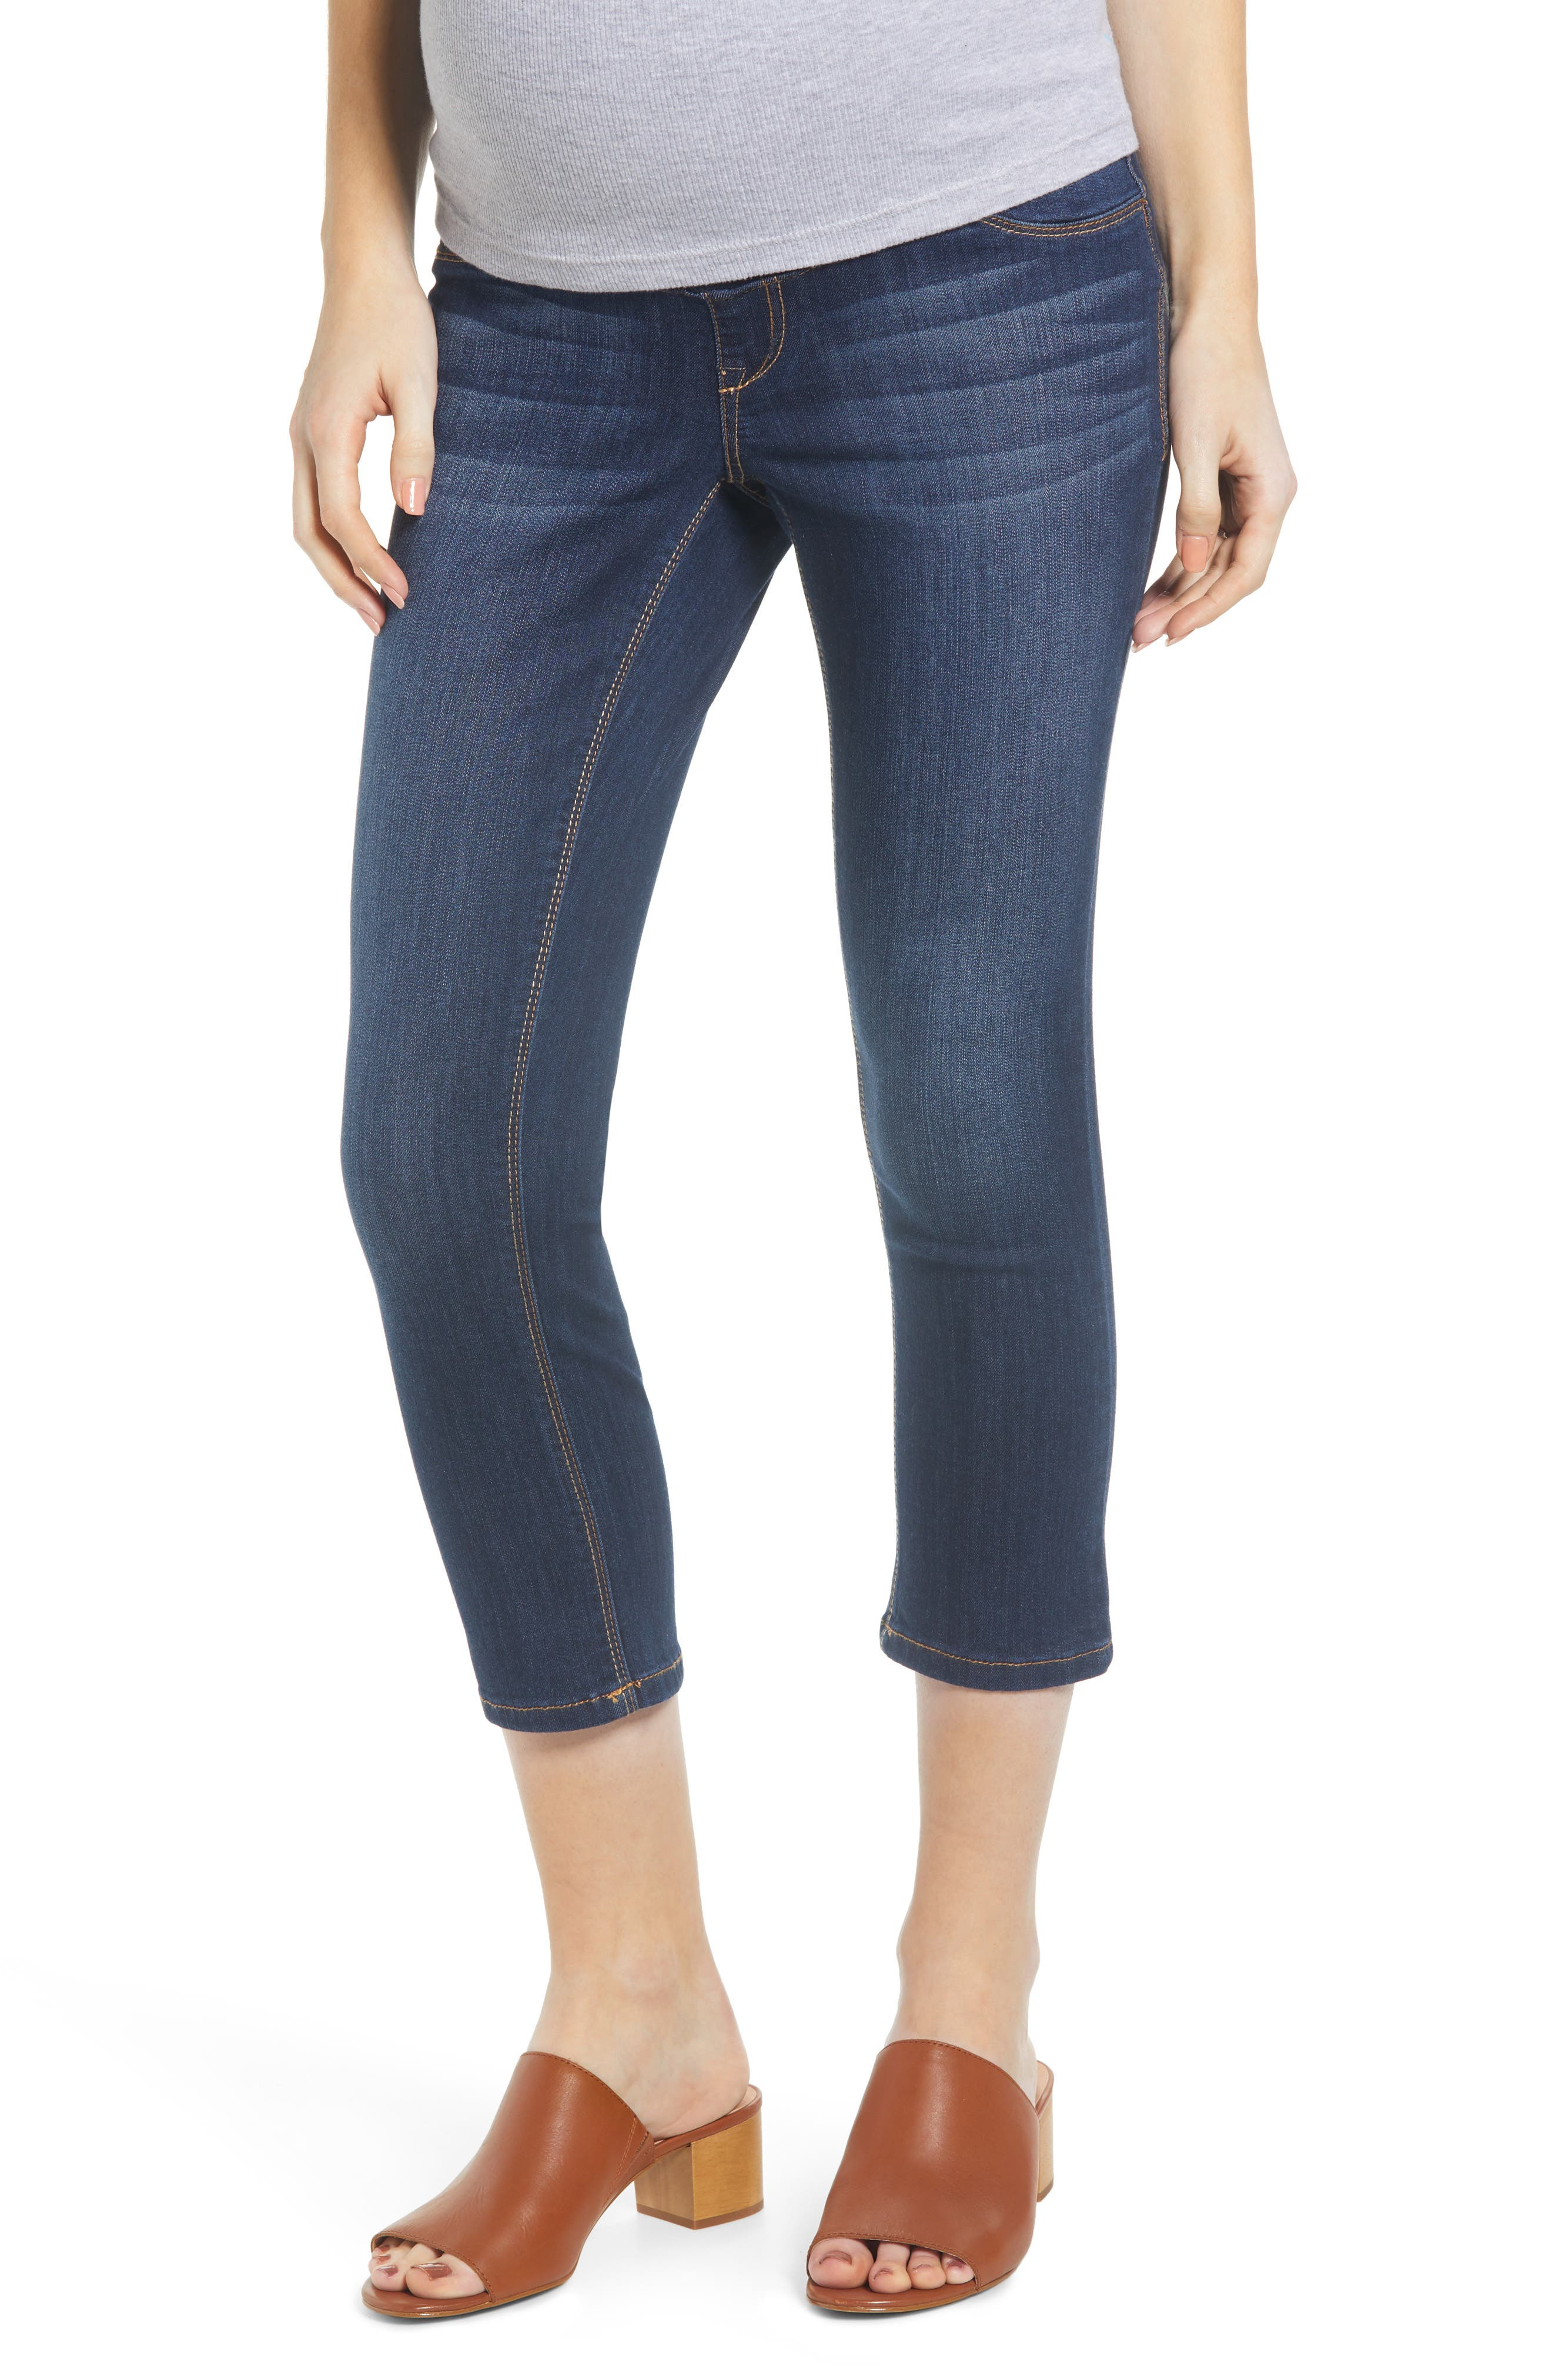 785b569b16c0b Women's 1822 Denim Crop Maternity Skinny Jeans